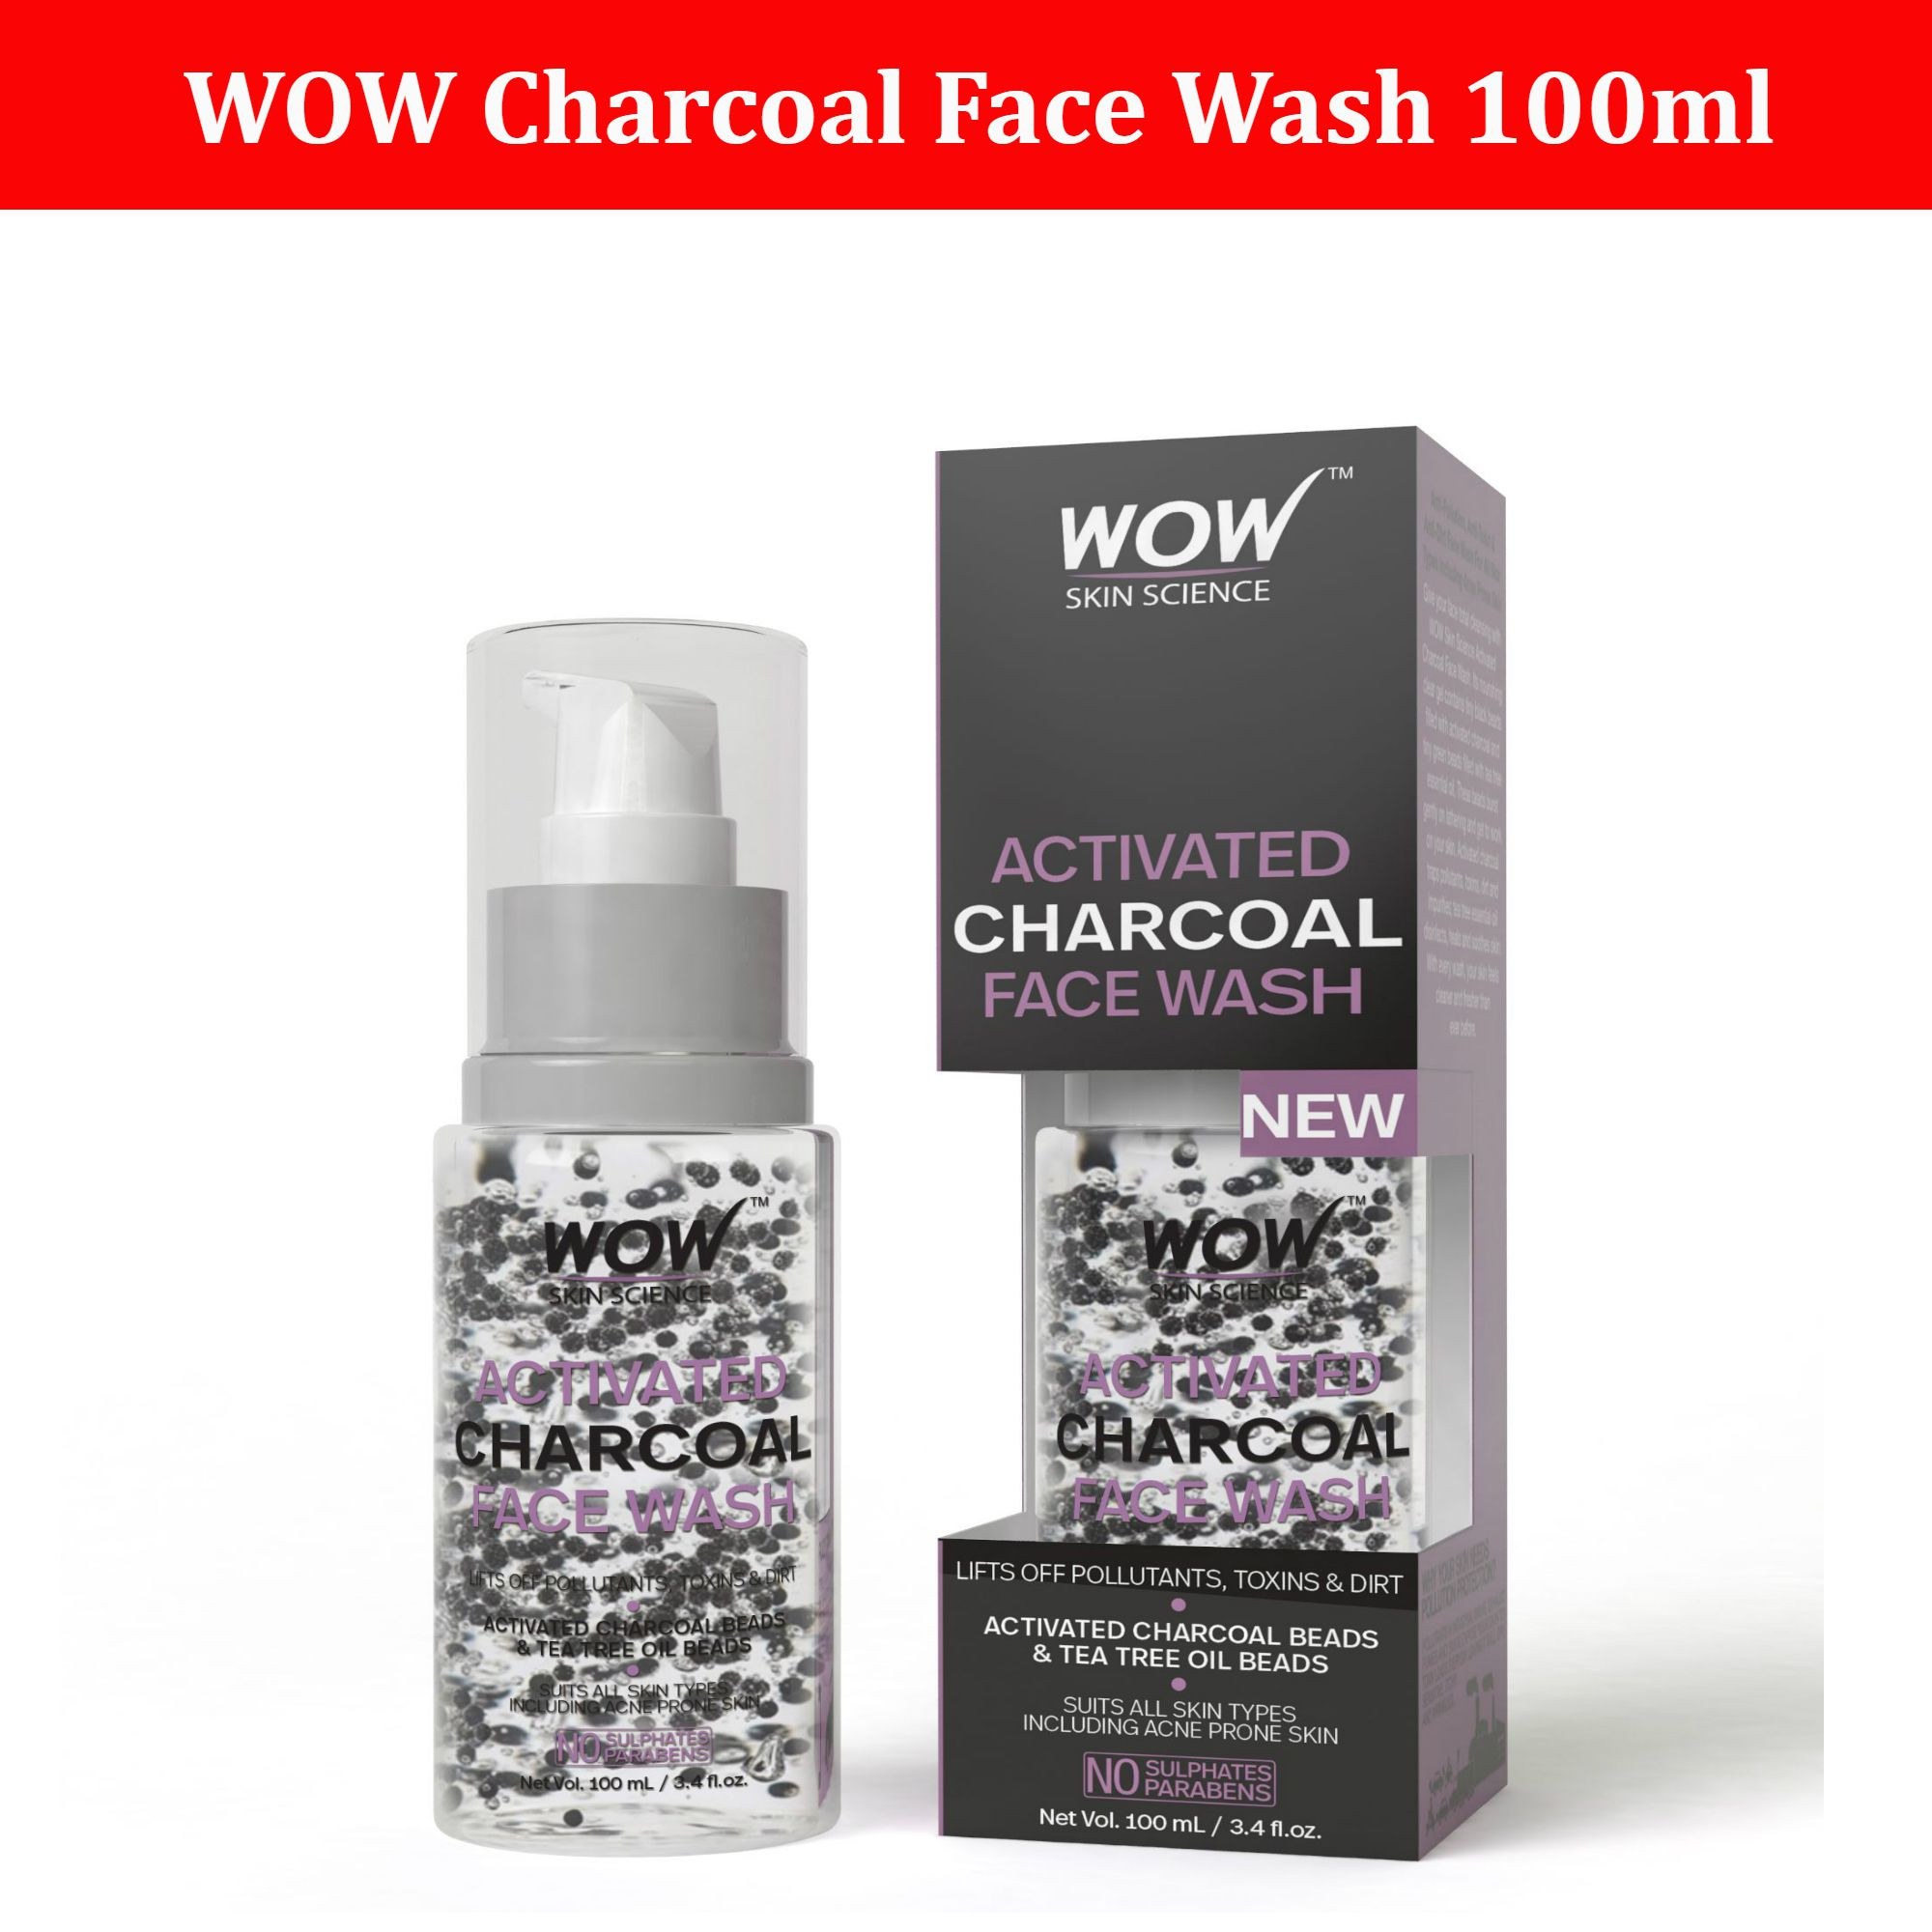 WOW Activated Charcoal Face Wash 100ml